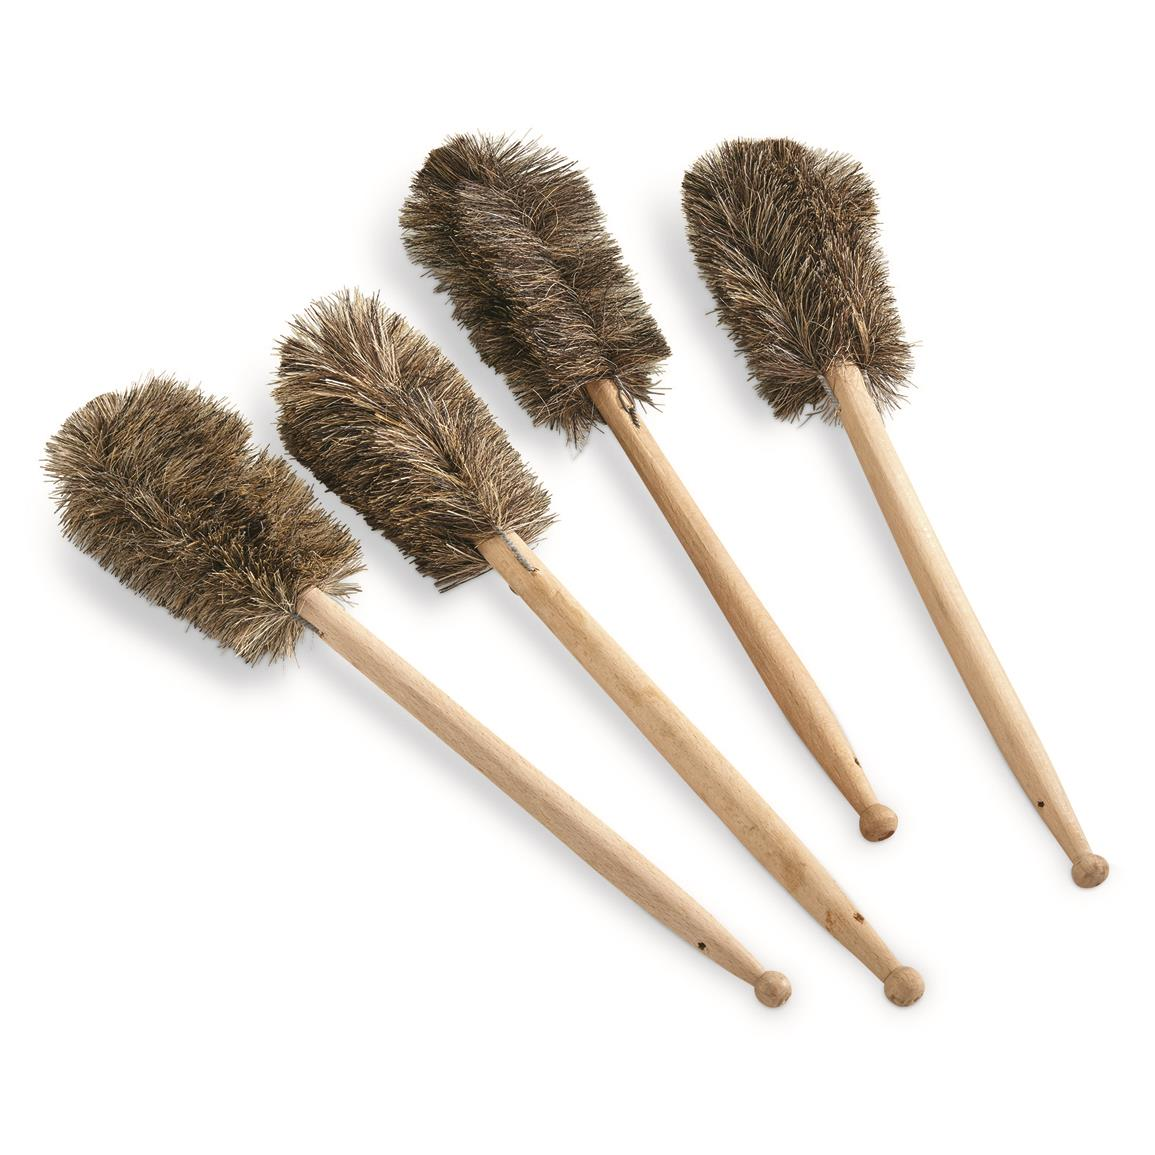 Czech Republic Military Surplus Cleaning Brushes, 4 Pack, New